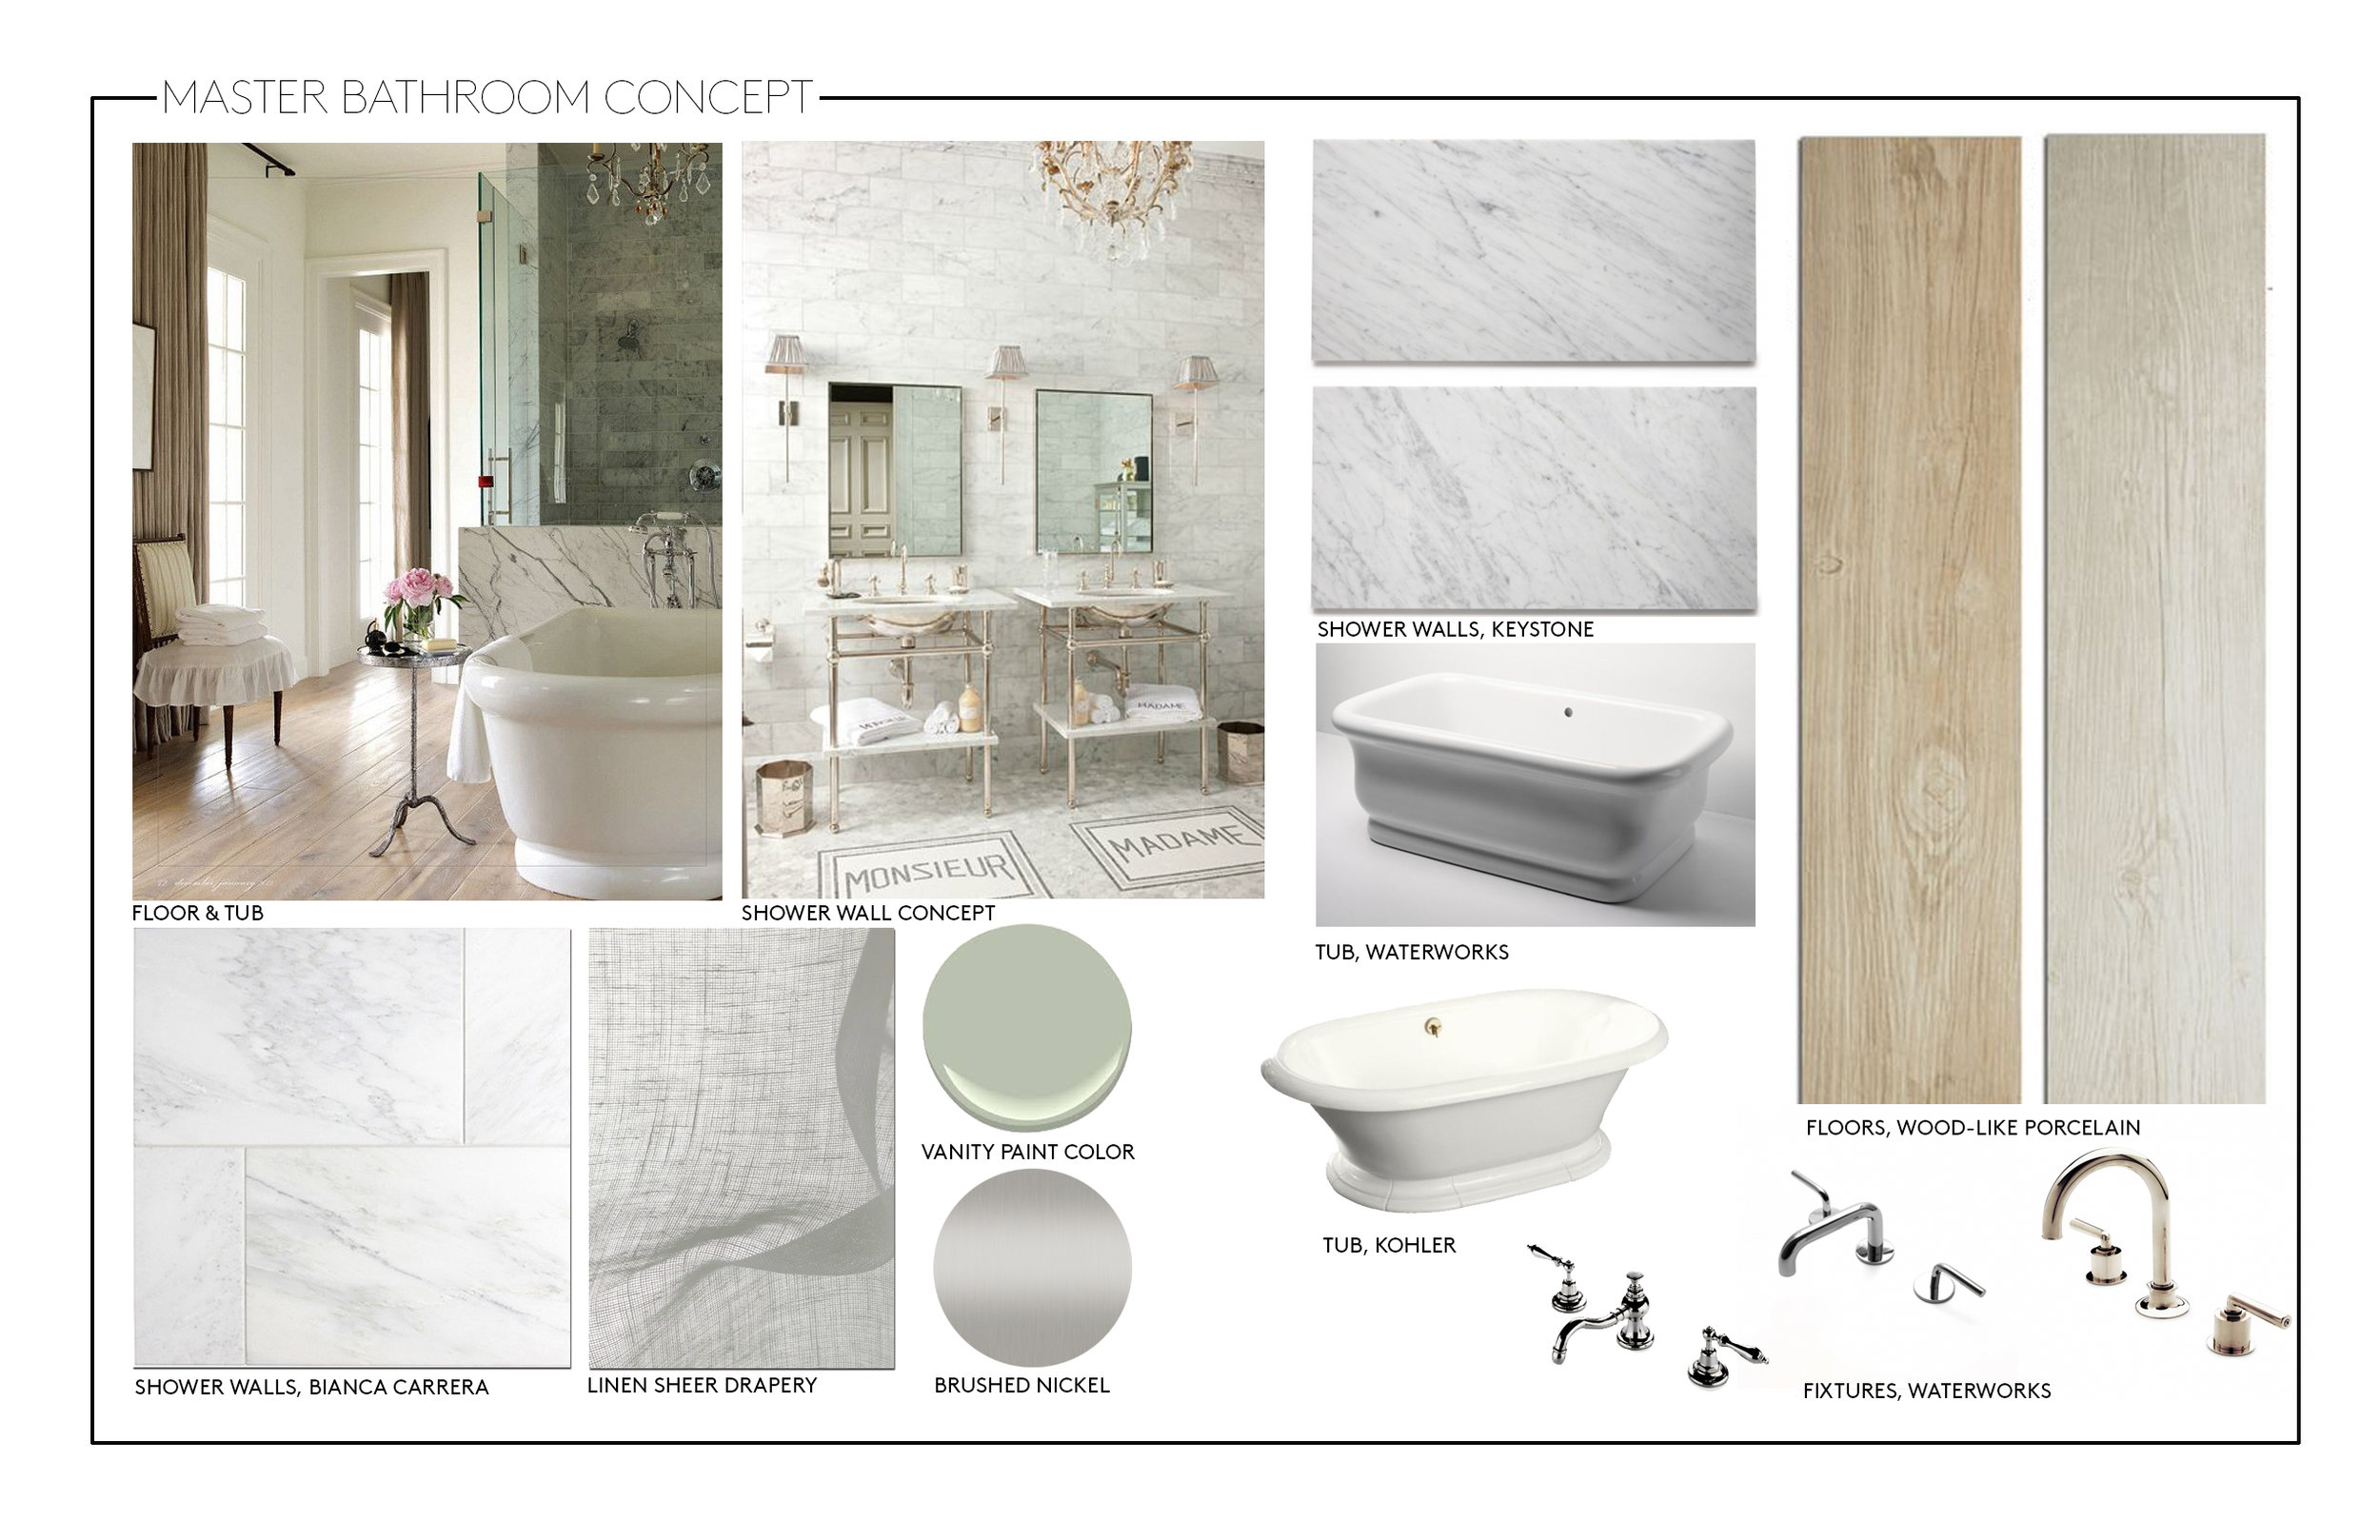 This master bathroom concept board captured a french-inspired look, with wood-look tile flooring, light colored marble tile and traditional free standing tub.